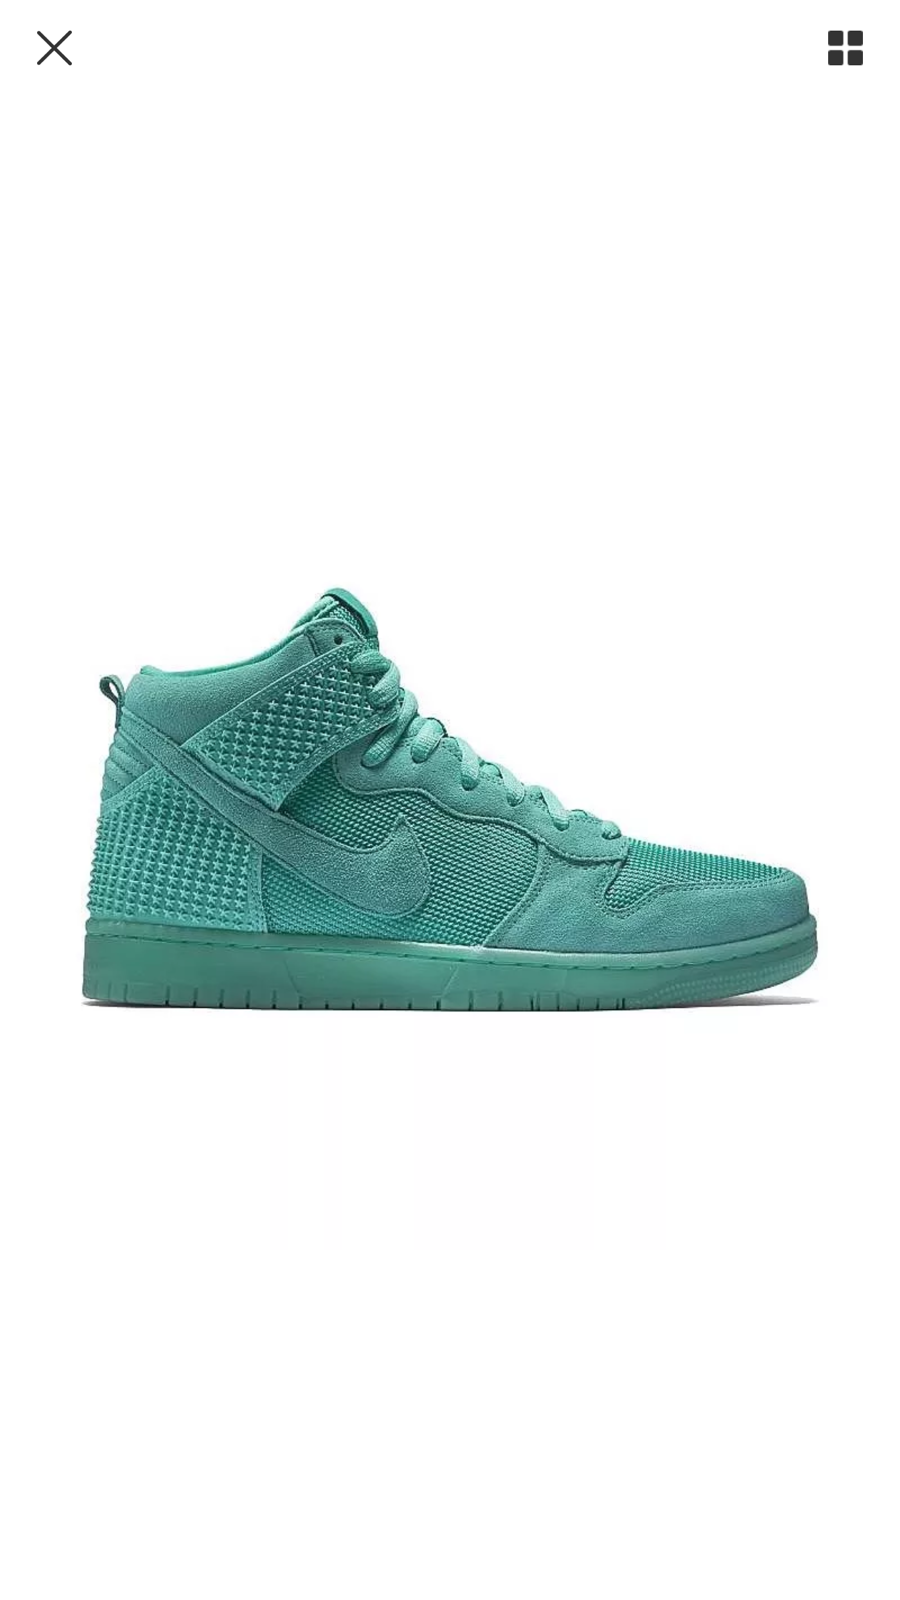 81a34e65cd37 Brand new nike dunk high comfort premium suede mens shoes shoes shoes  a2f0fc ...